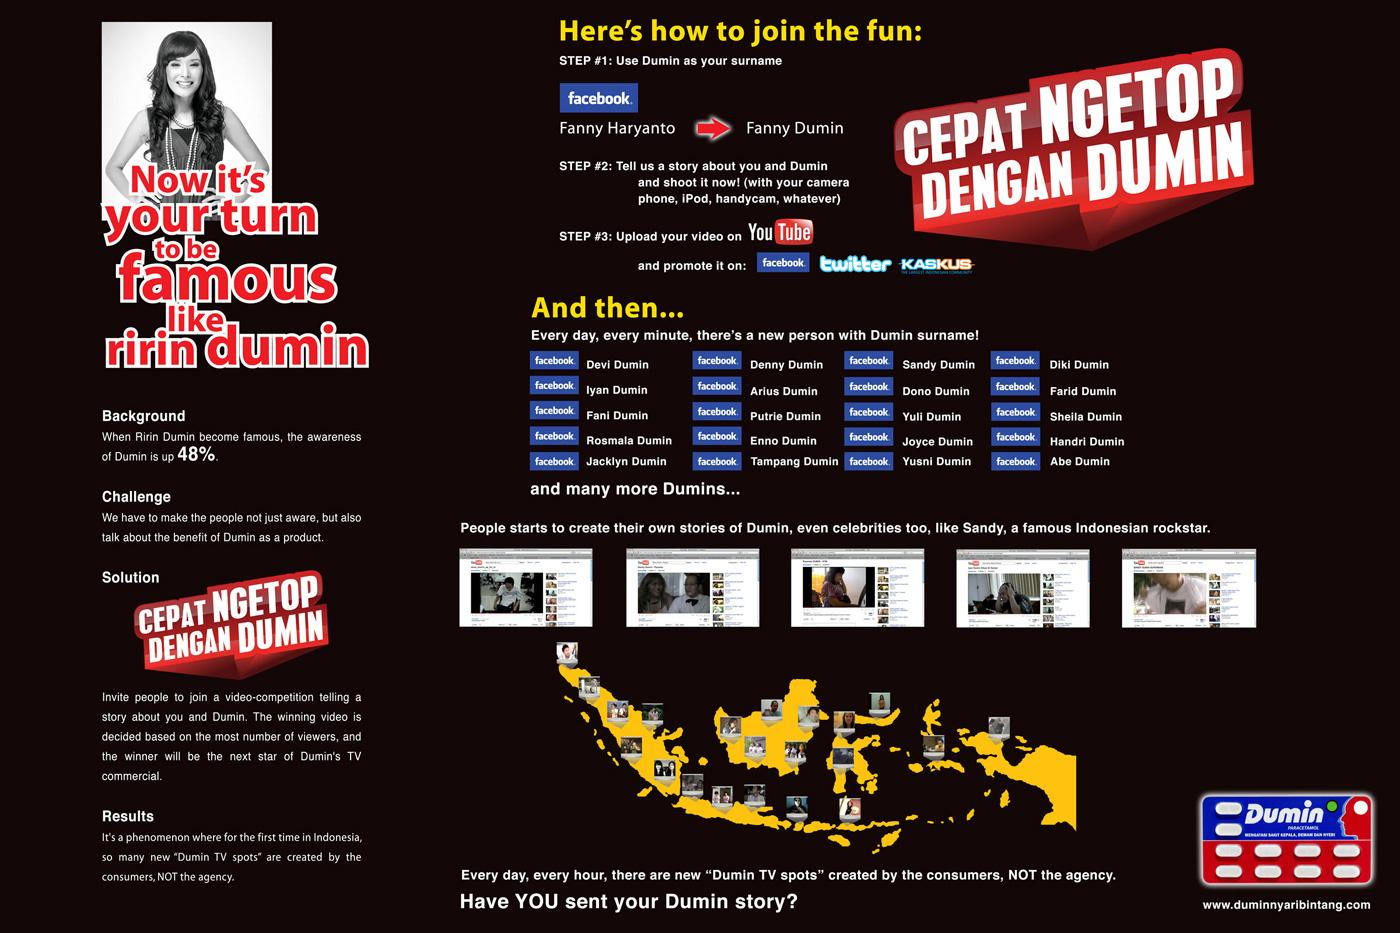 Dumin Digital Ad -  Ririn Dumin, Part two  Now it's your turn to be famous!